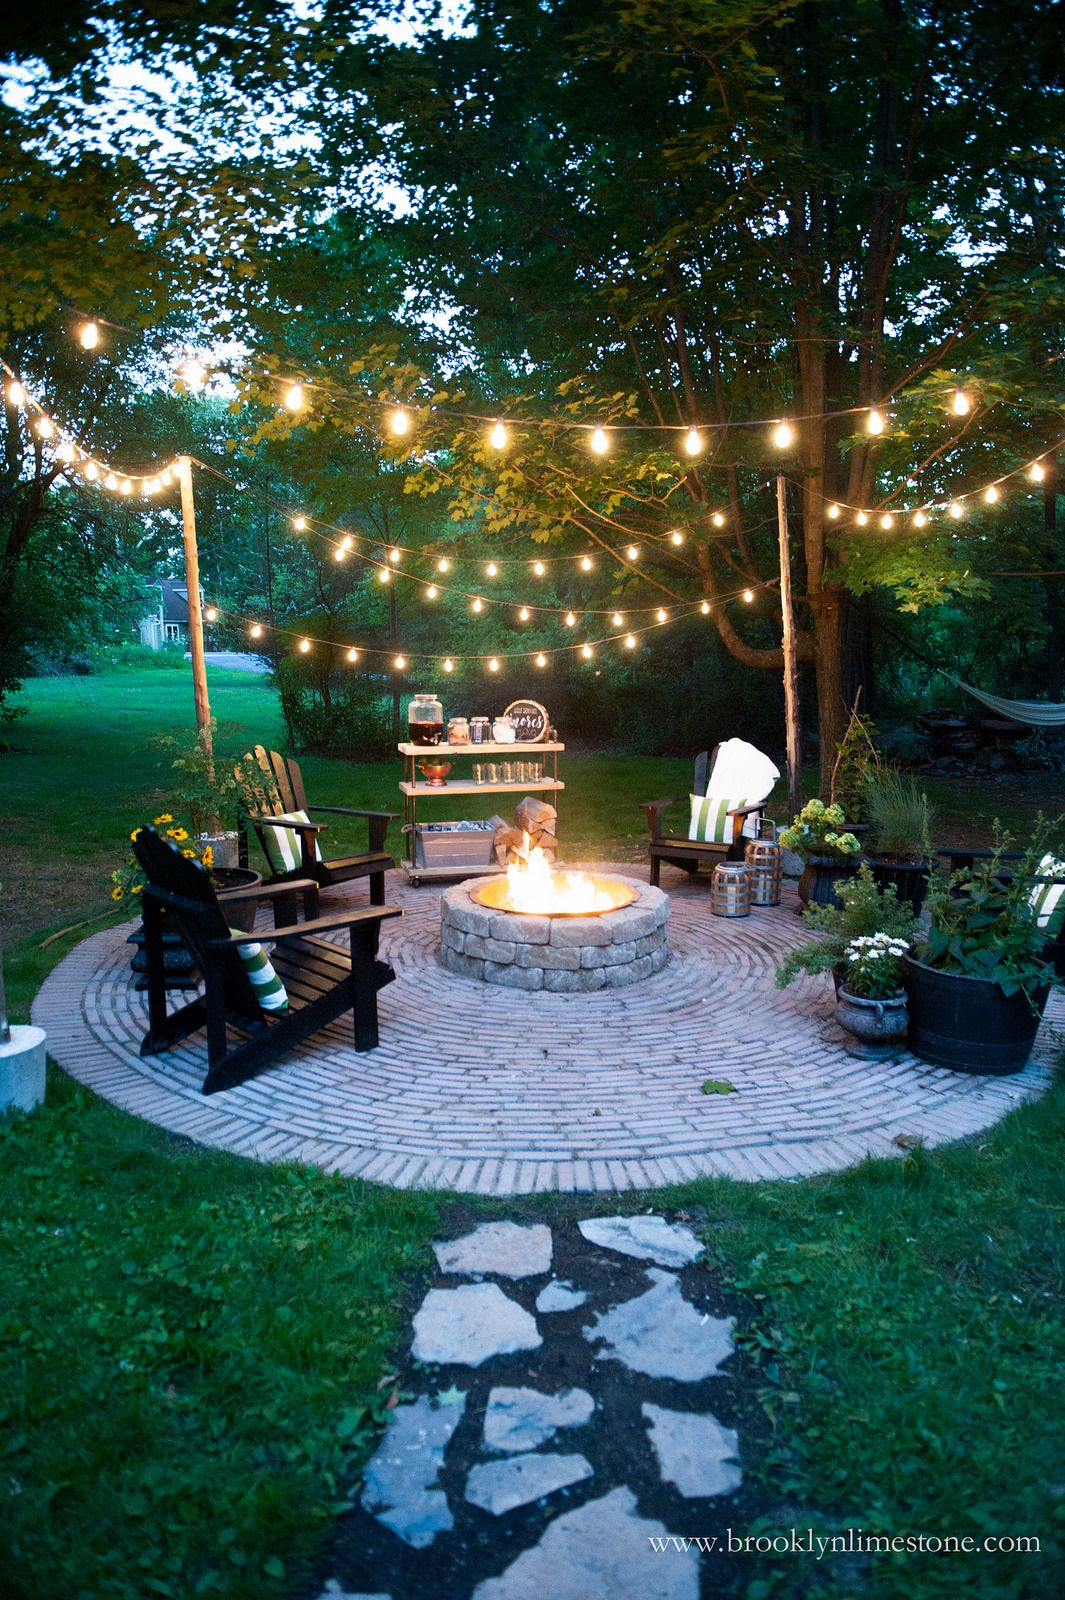 Brooklyn Limestone Has Us Swooning For This Circular Fire Pit Patio Click The Tutorial